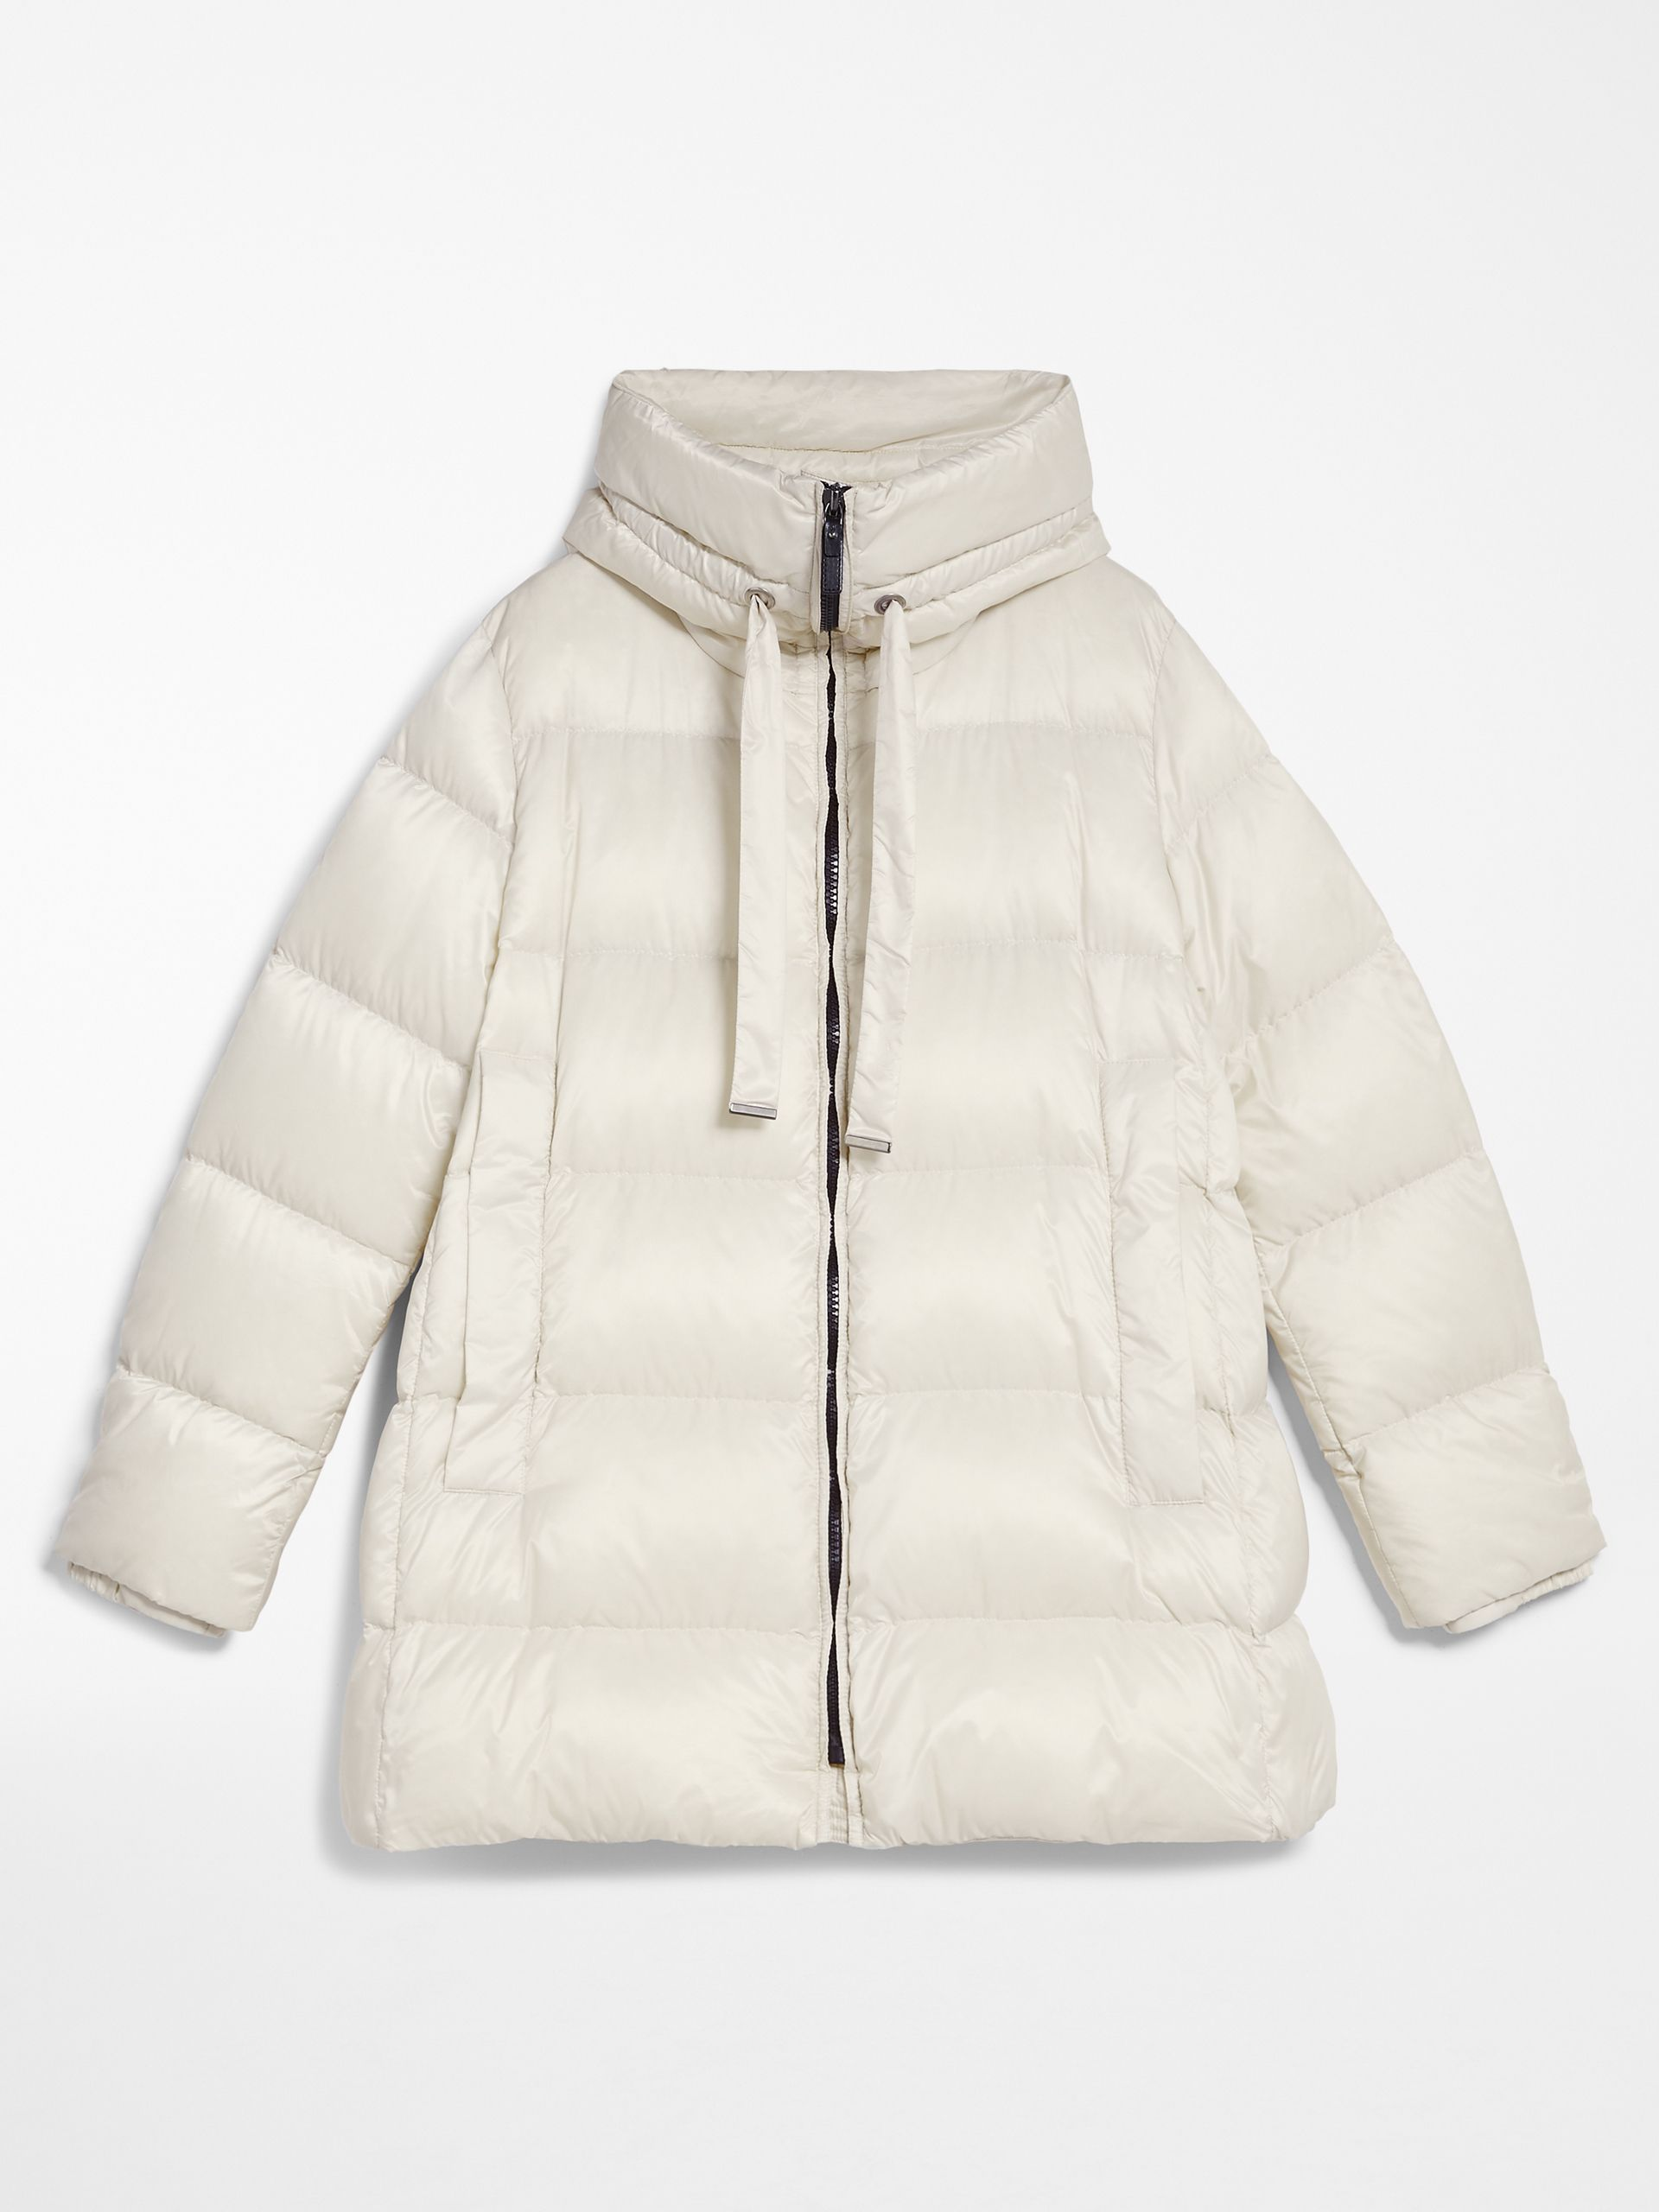 Water Resistant Fabric Down Jacket Sand Seicar Max Mara Down Jacket Max Mara Jackets [ 2560 x 1920 Pixel ]